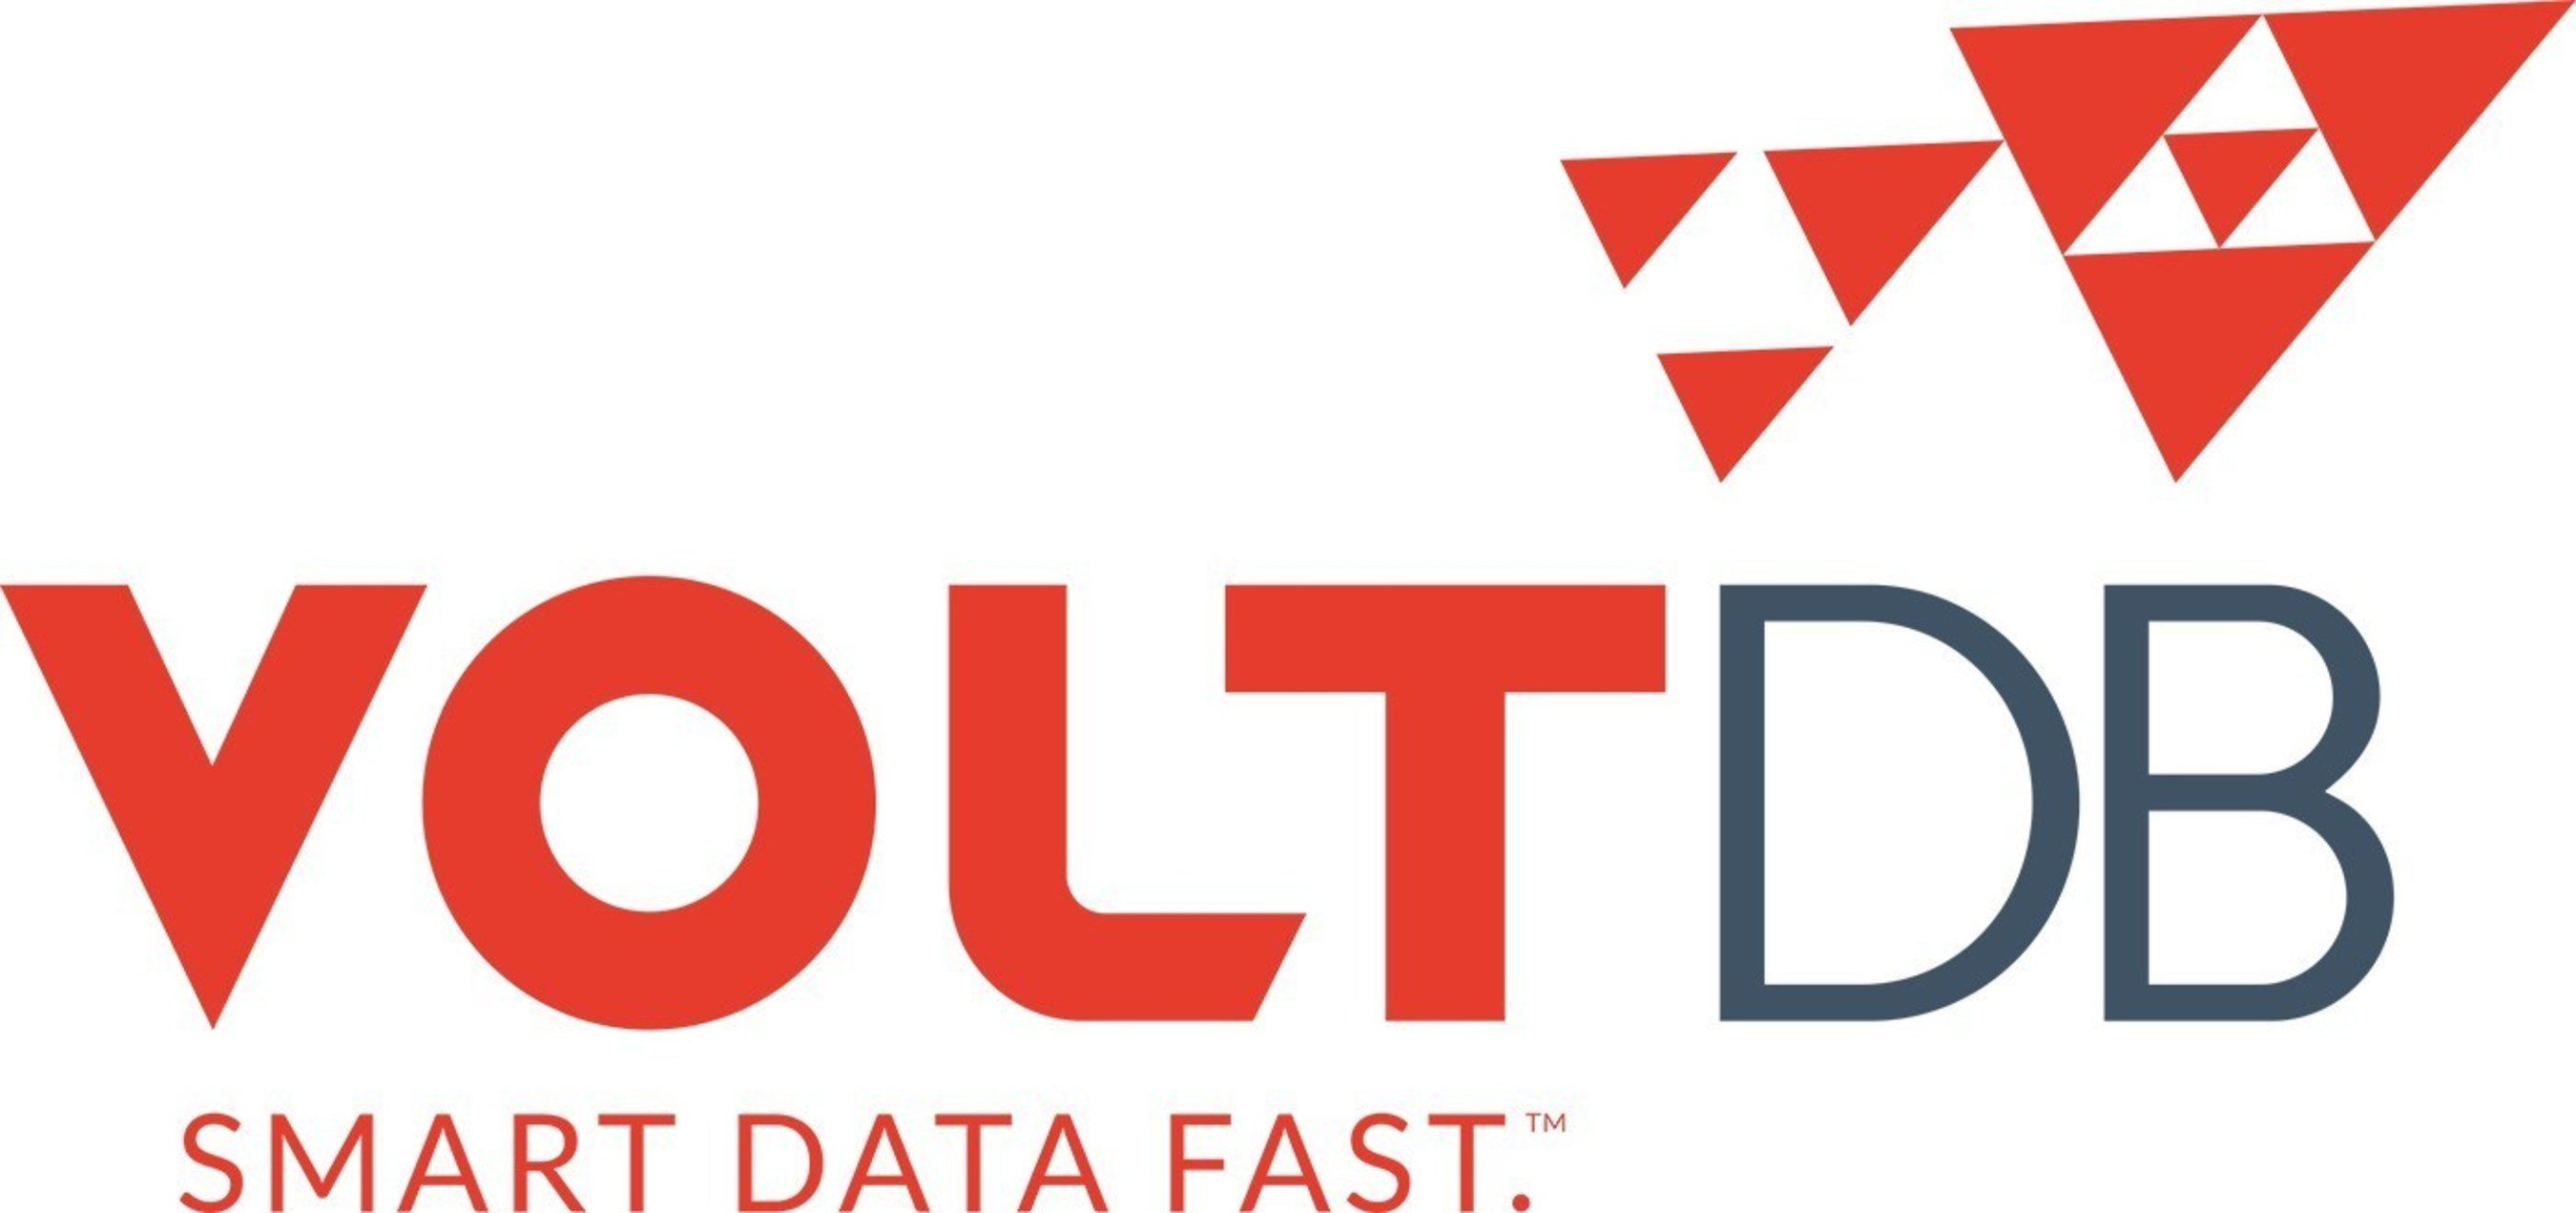 VoltDB Named a Strong Performer in In-Memory Database Platforms Market by Independent Research Firm